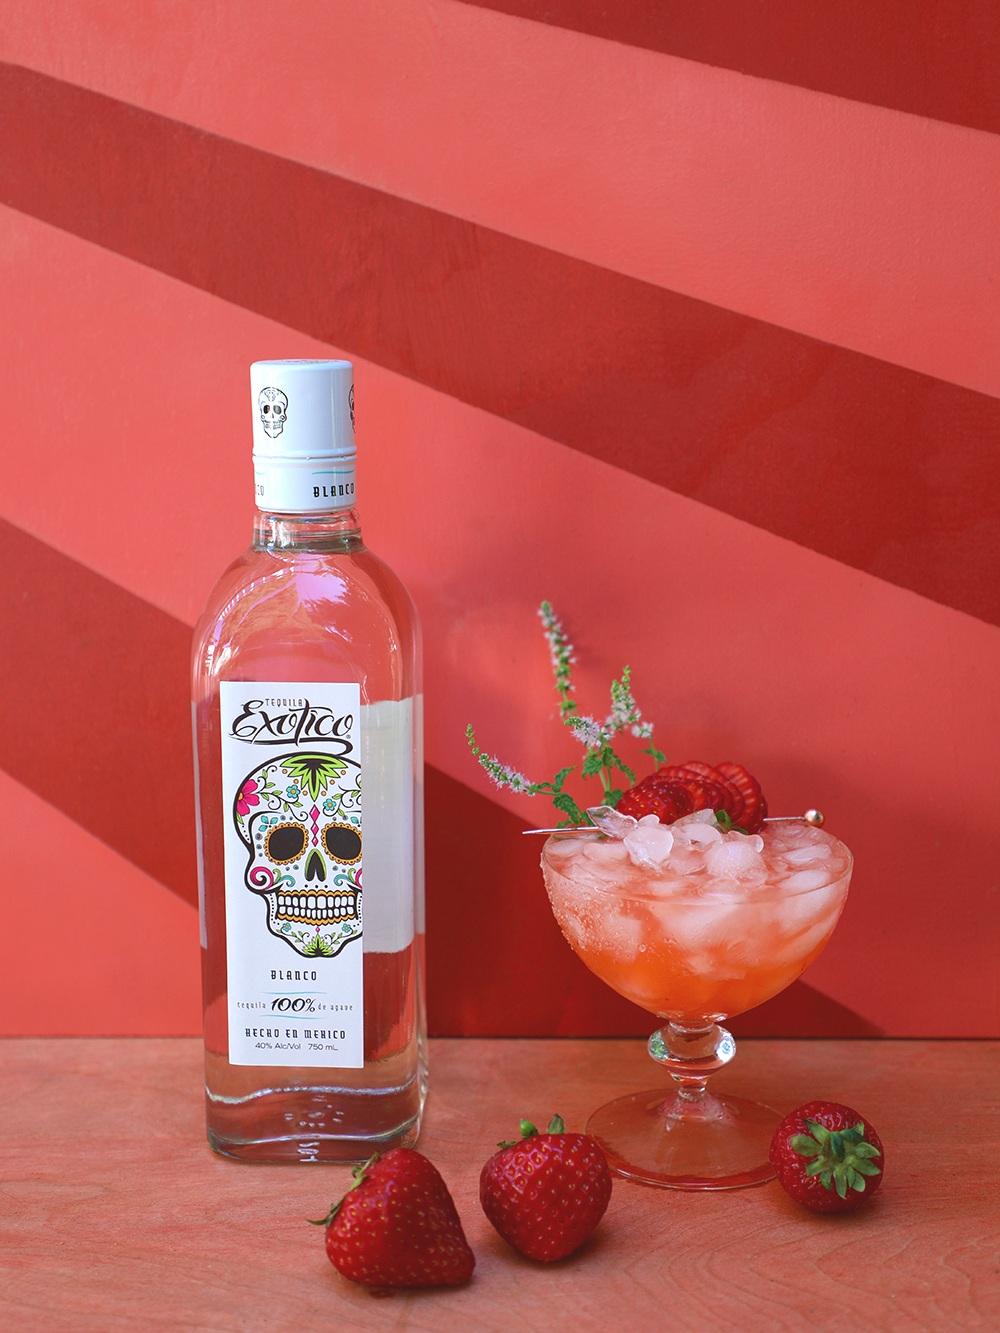 Strawberry+Fields+Forever+Margarita+made+with+fresh+strawberry+mint%2C+strawberries%2C+and+Tequila+Exotico+Blanco+%7C+drinkingwithchickens.jpg